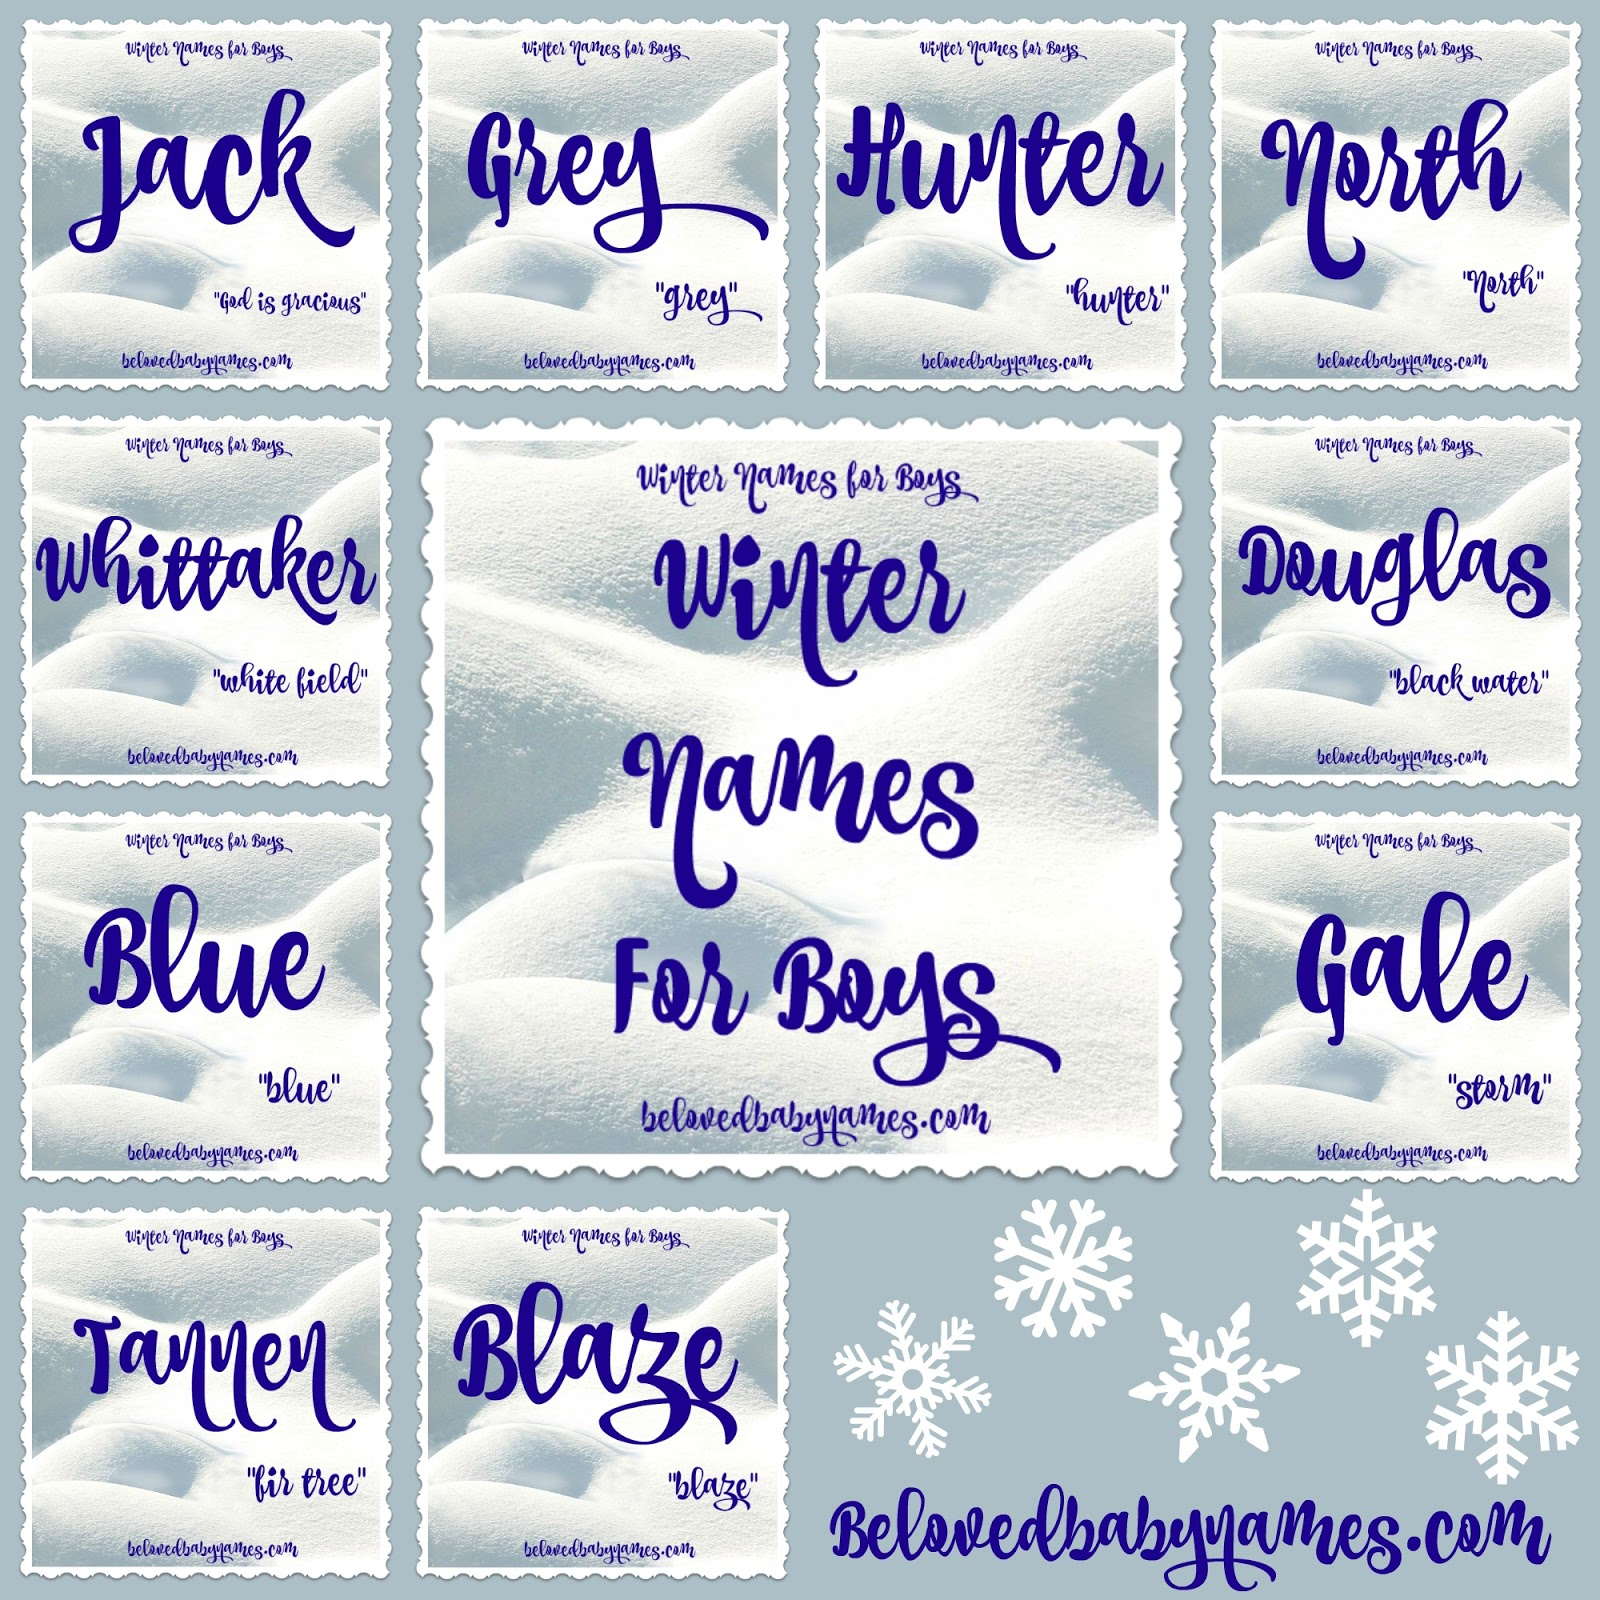 c7903050f Beloved Baby Names  Wonderful Winter Names For Boys